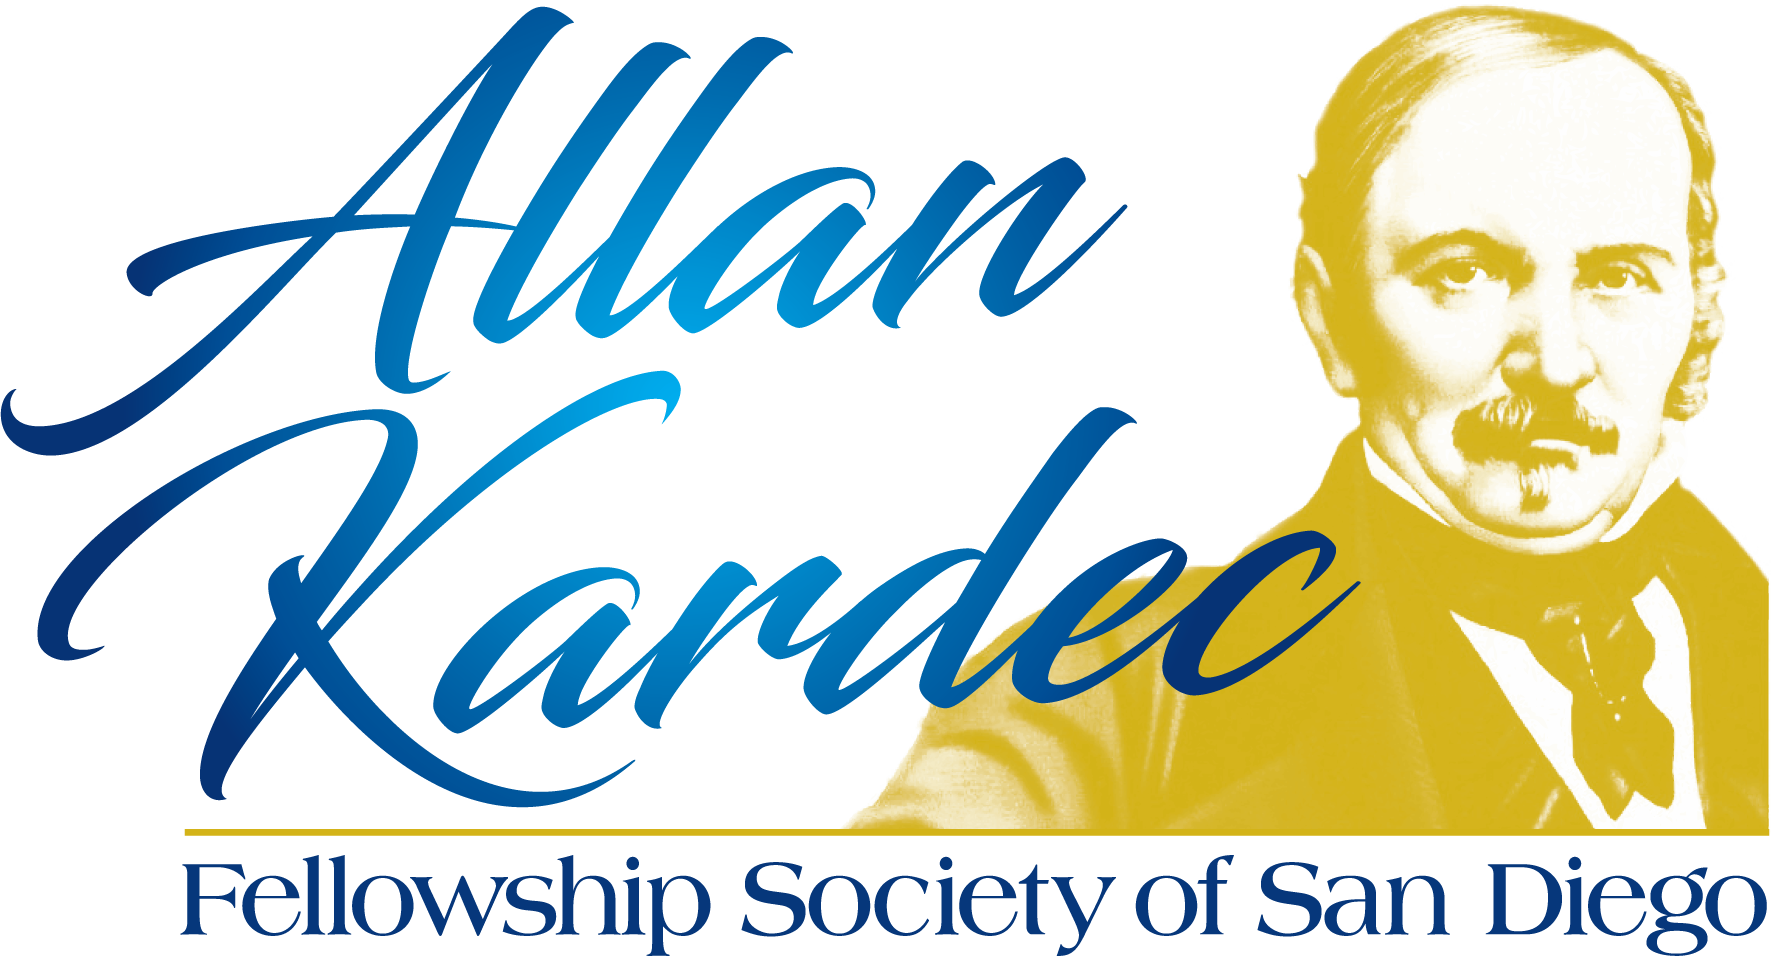 Allan Kardec Fellowship Society of San Diego